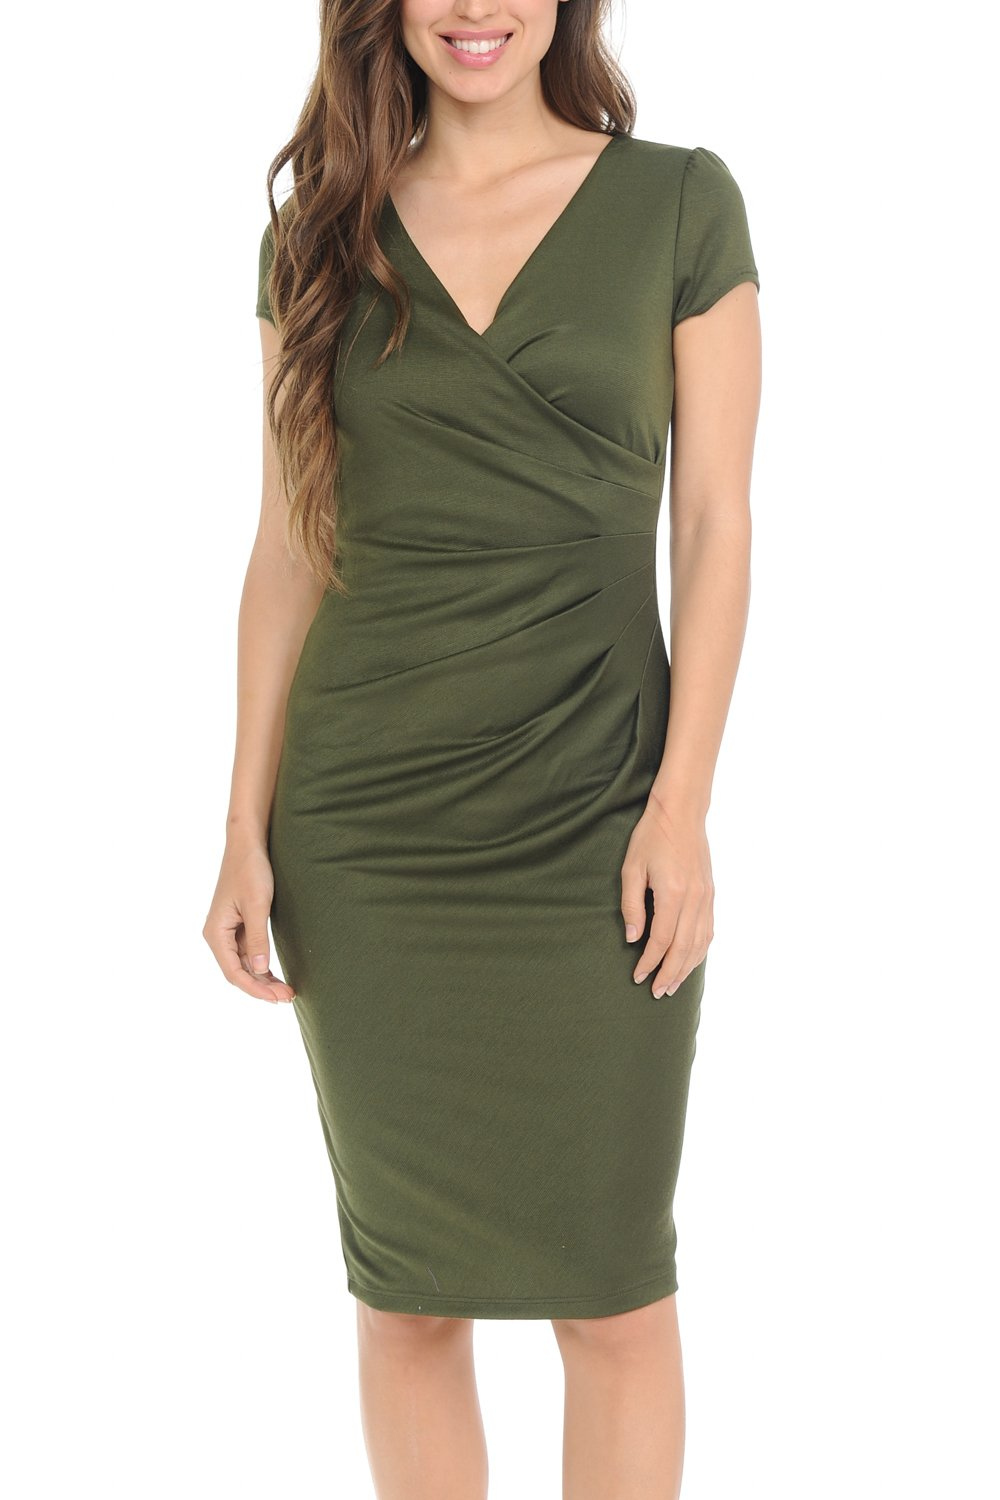 Auliné Collection Womens V-Neck Zip Up Work Office Career Side Wrap Sheath Dress